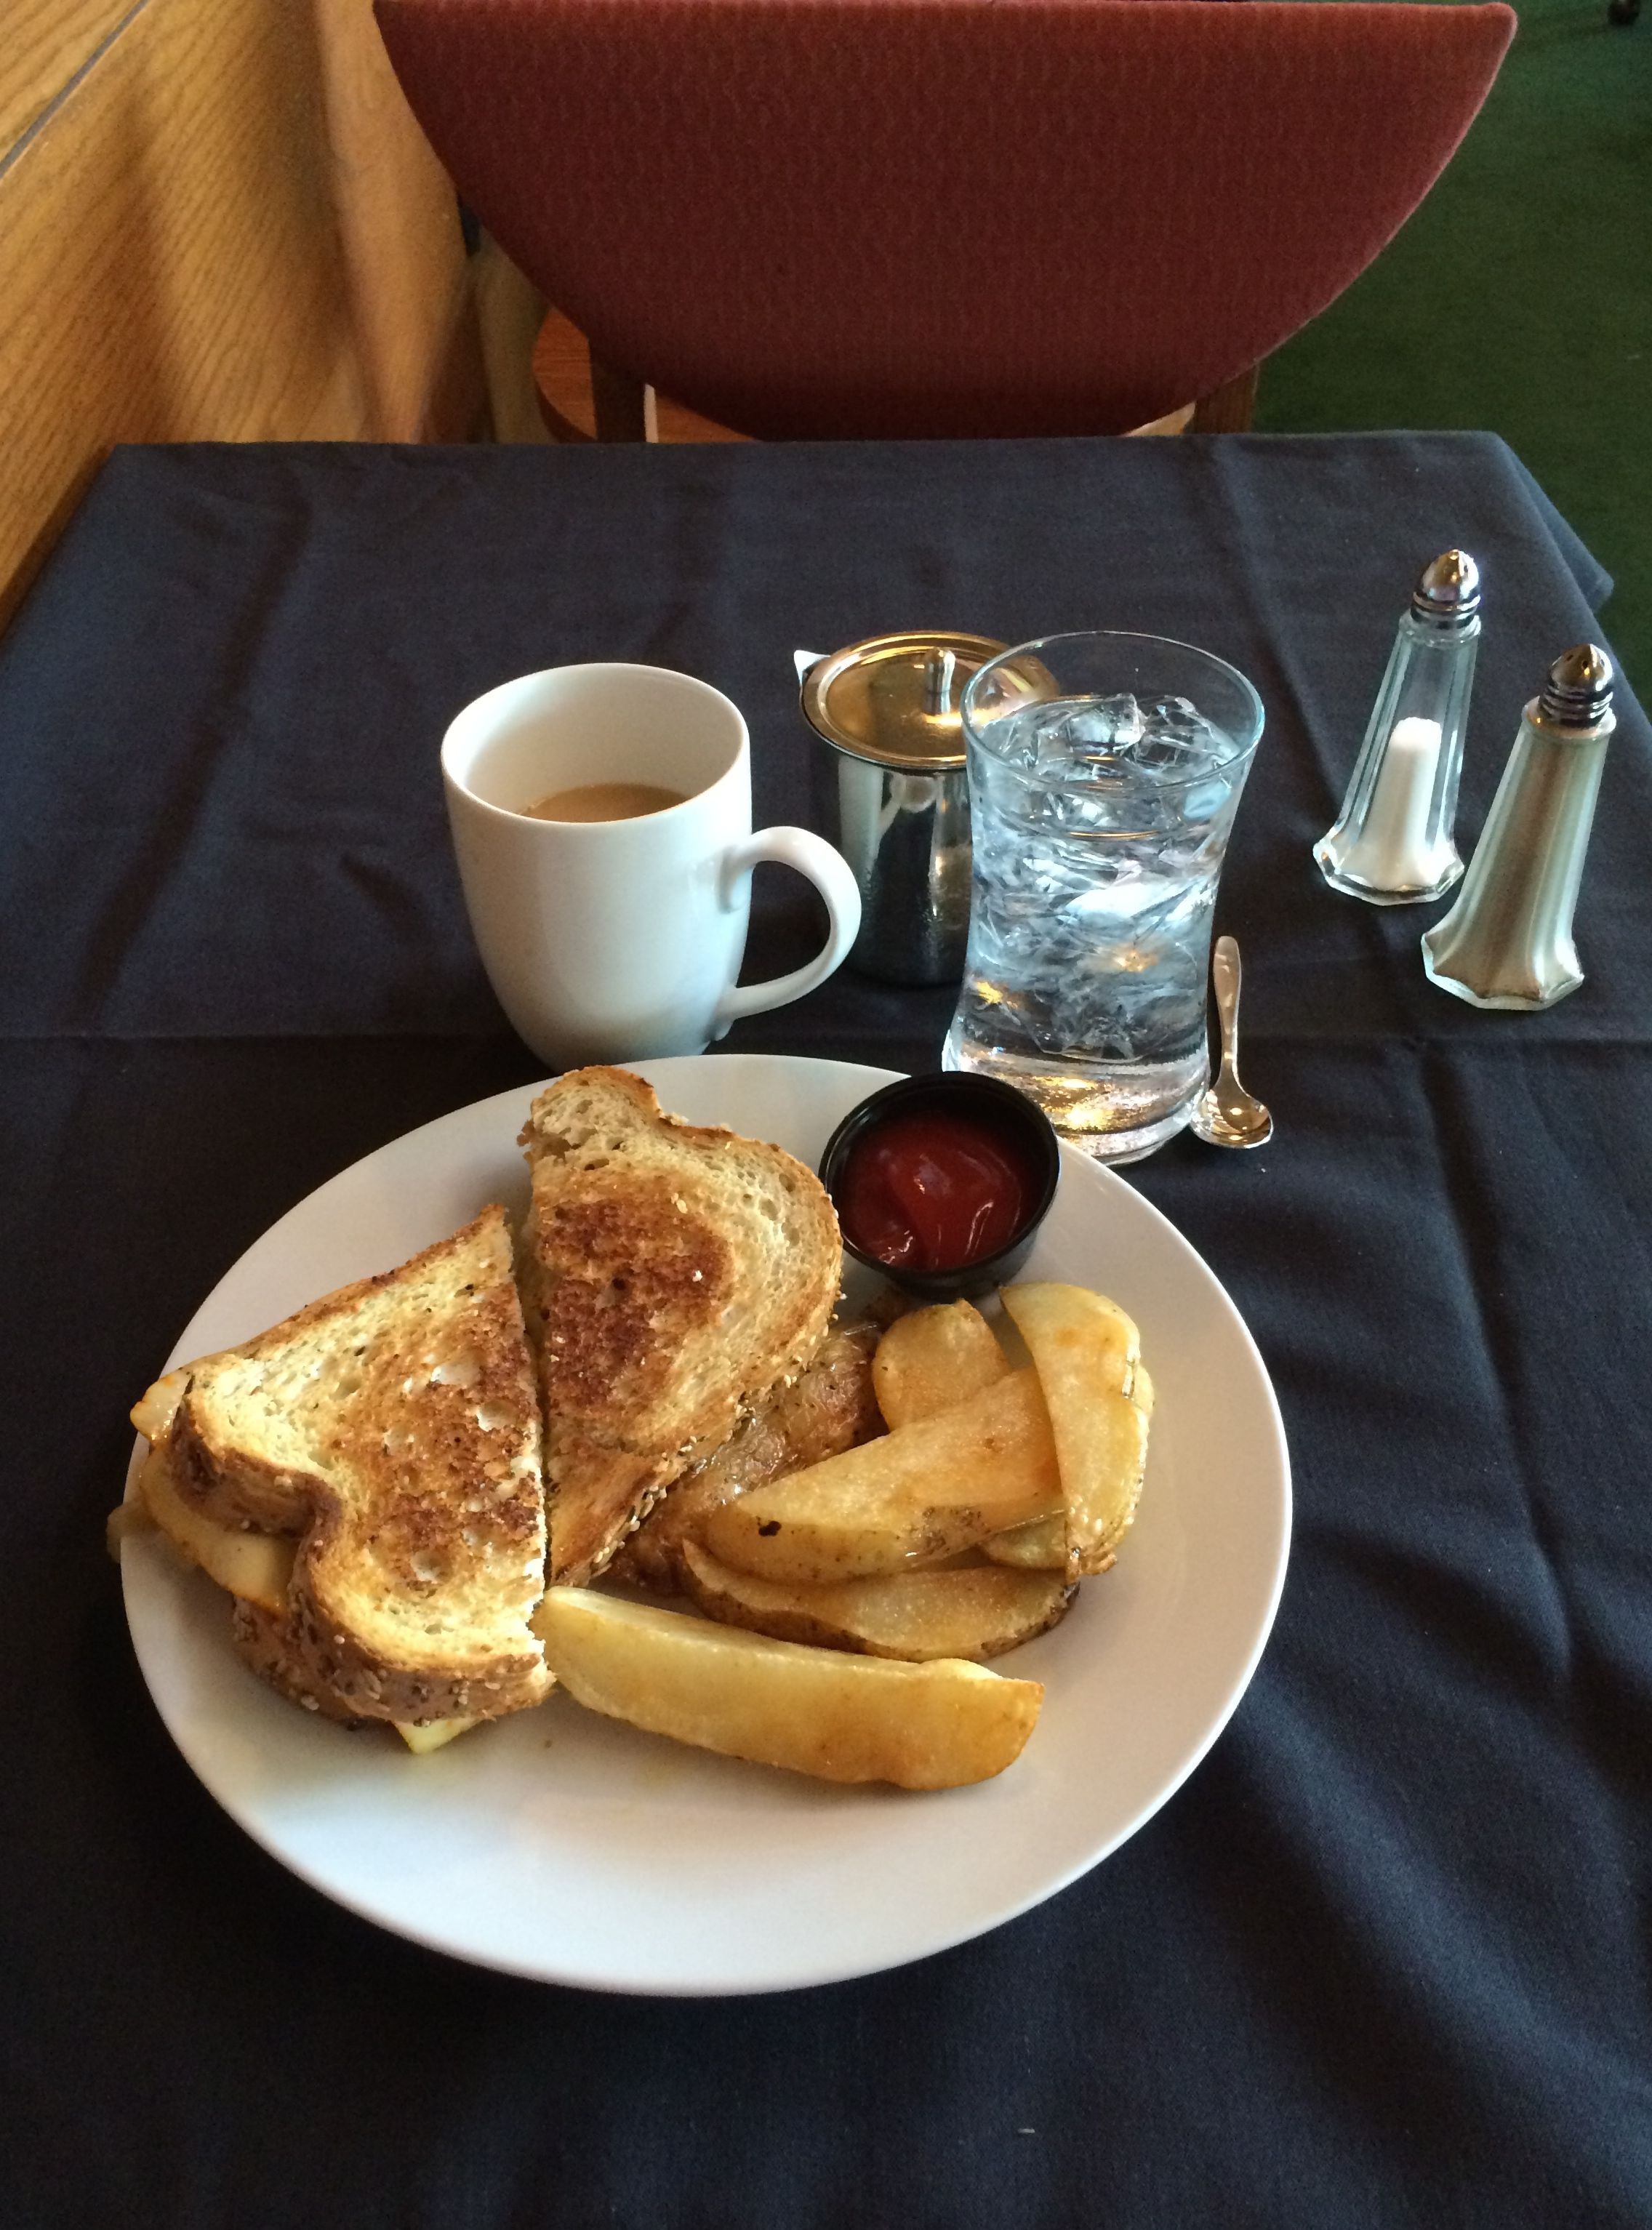 A Wisconsin lunch at Riverview Terrace Cafe in the Visitor's Center - a grilled cheese sandwich